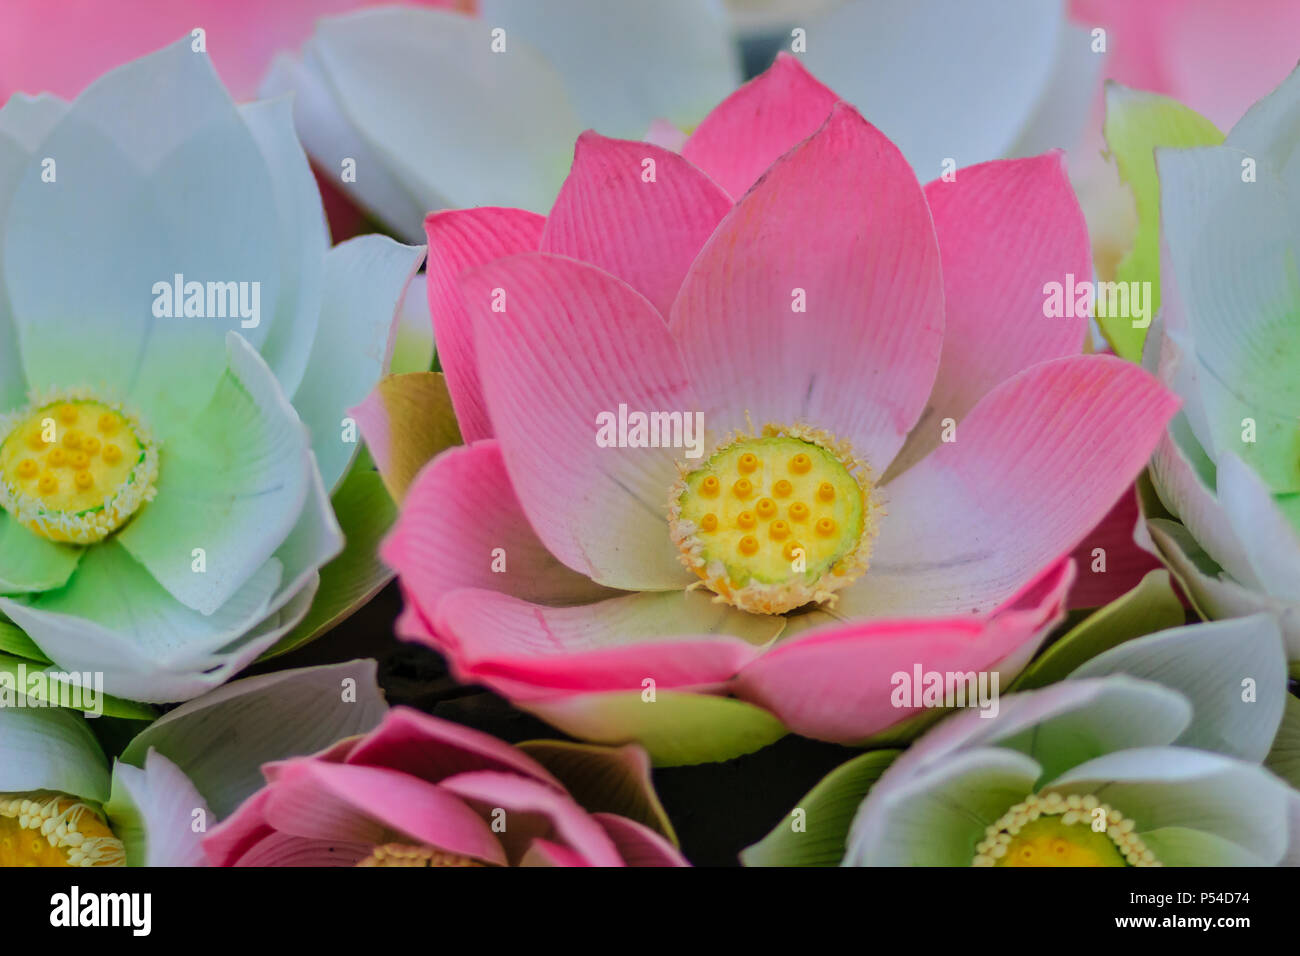 Handmade paper with flower petals stock photos handmade paper with cute artificial pink lotus flowers or water lily artificial lotus flower handmade paper lotus mightylinksfo